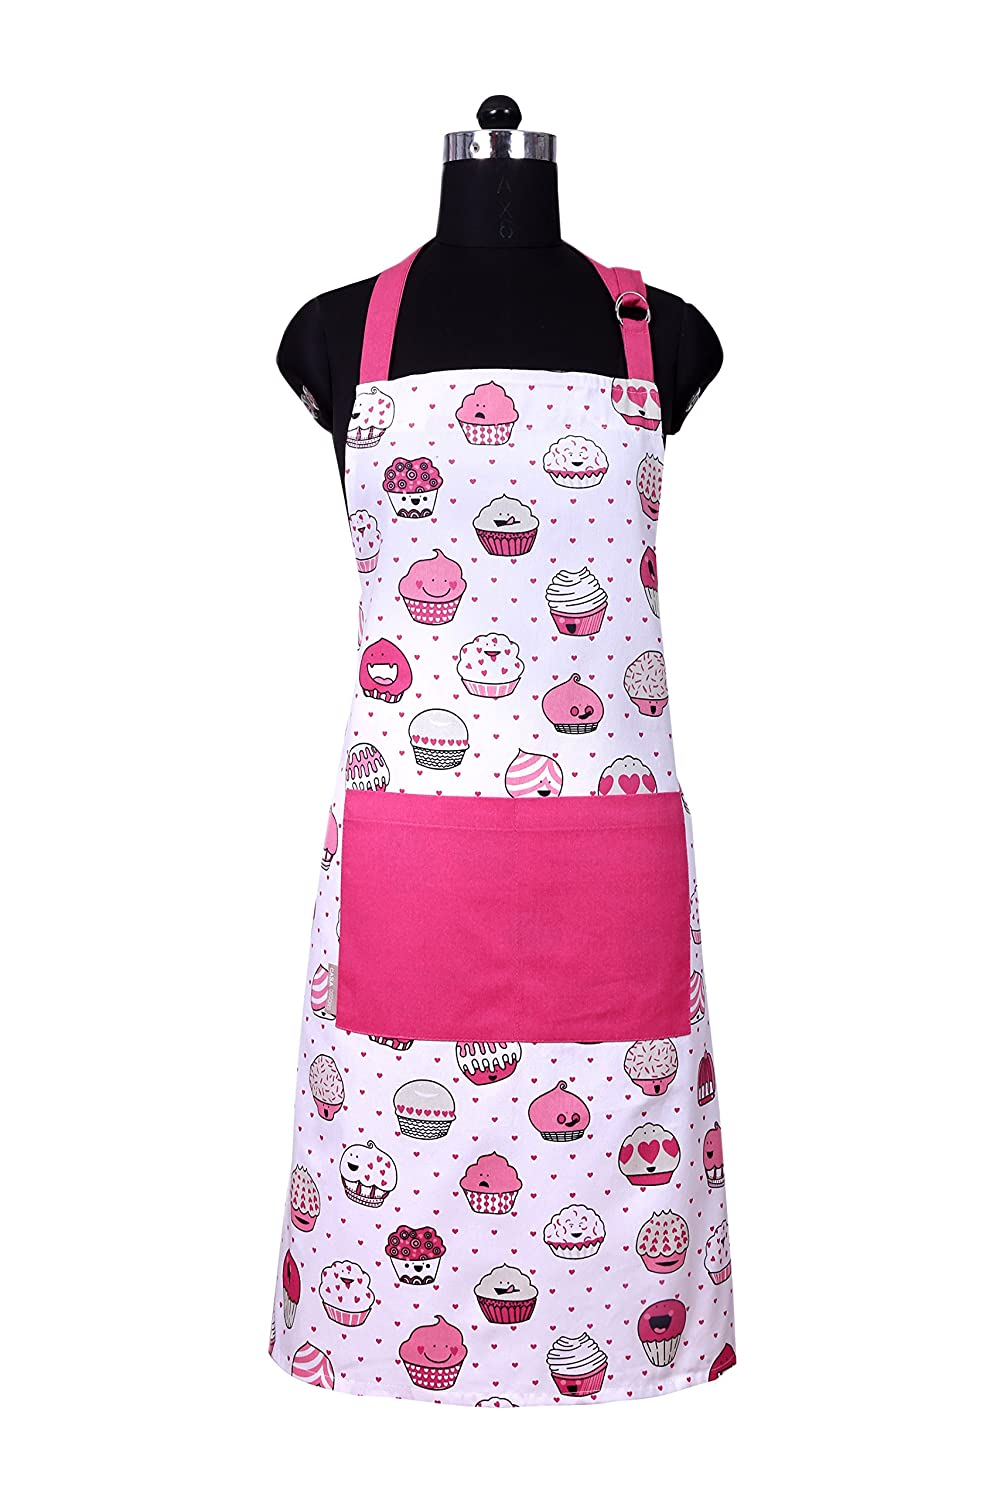 Cup Cakes Aprons for Women